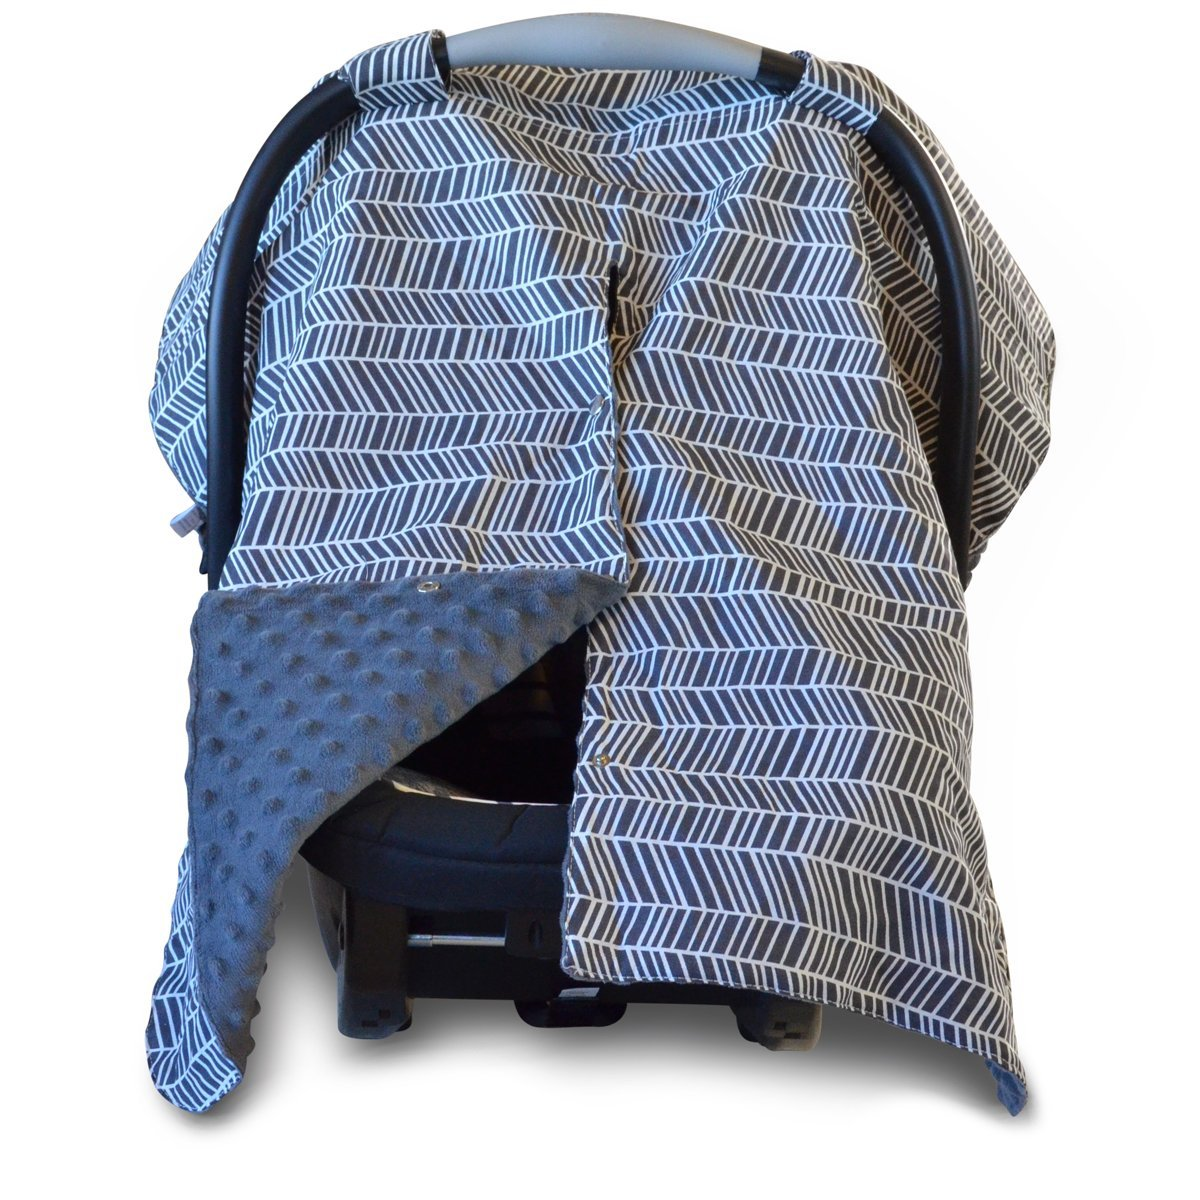 Amazon.com: 2 in 1 Carseat Canopy and Nursing Cover Up with Peekaboo ...